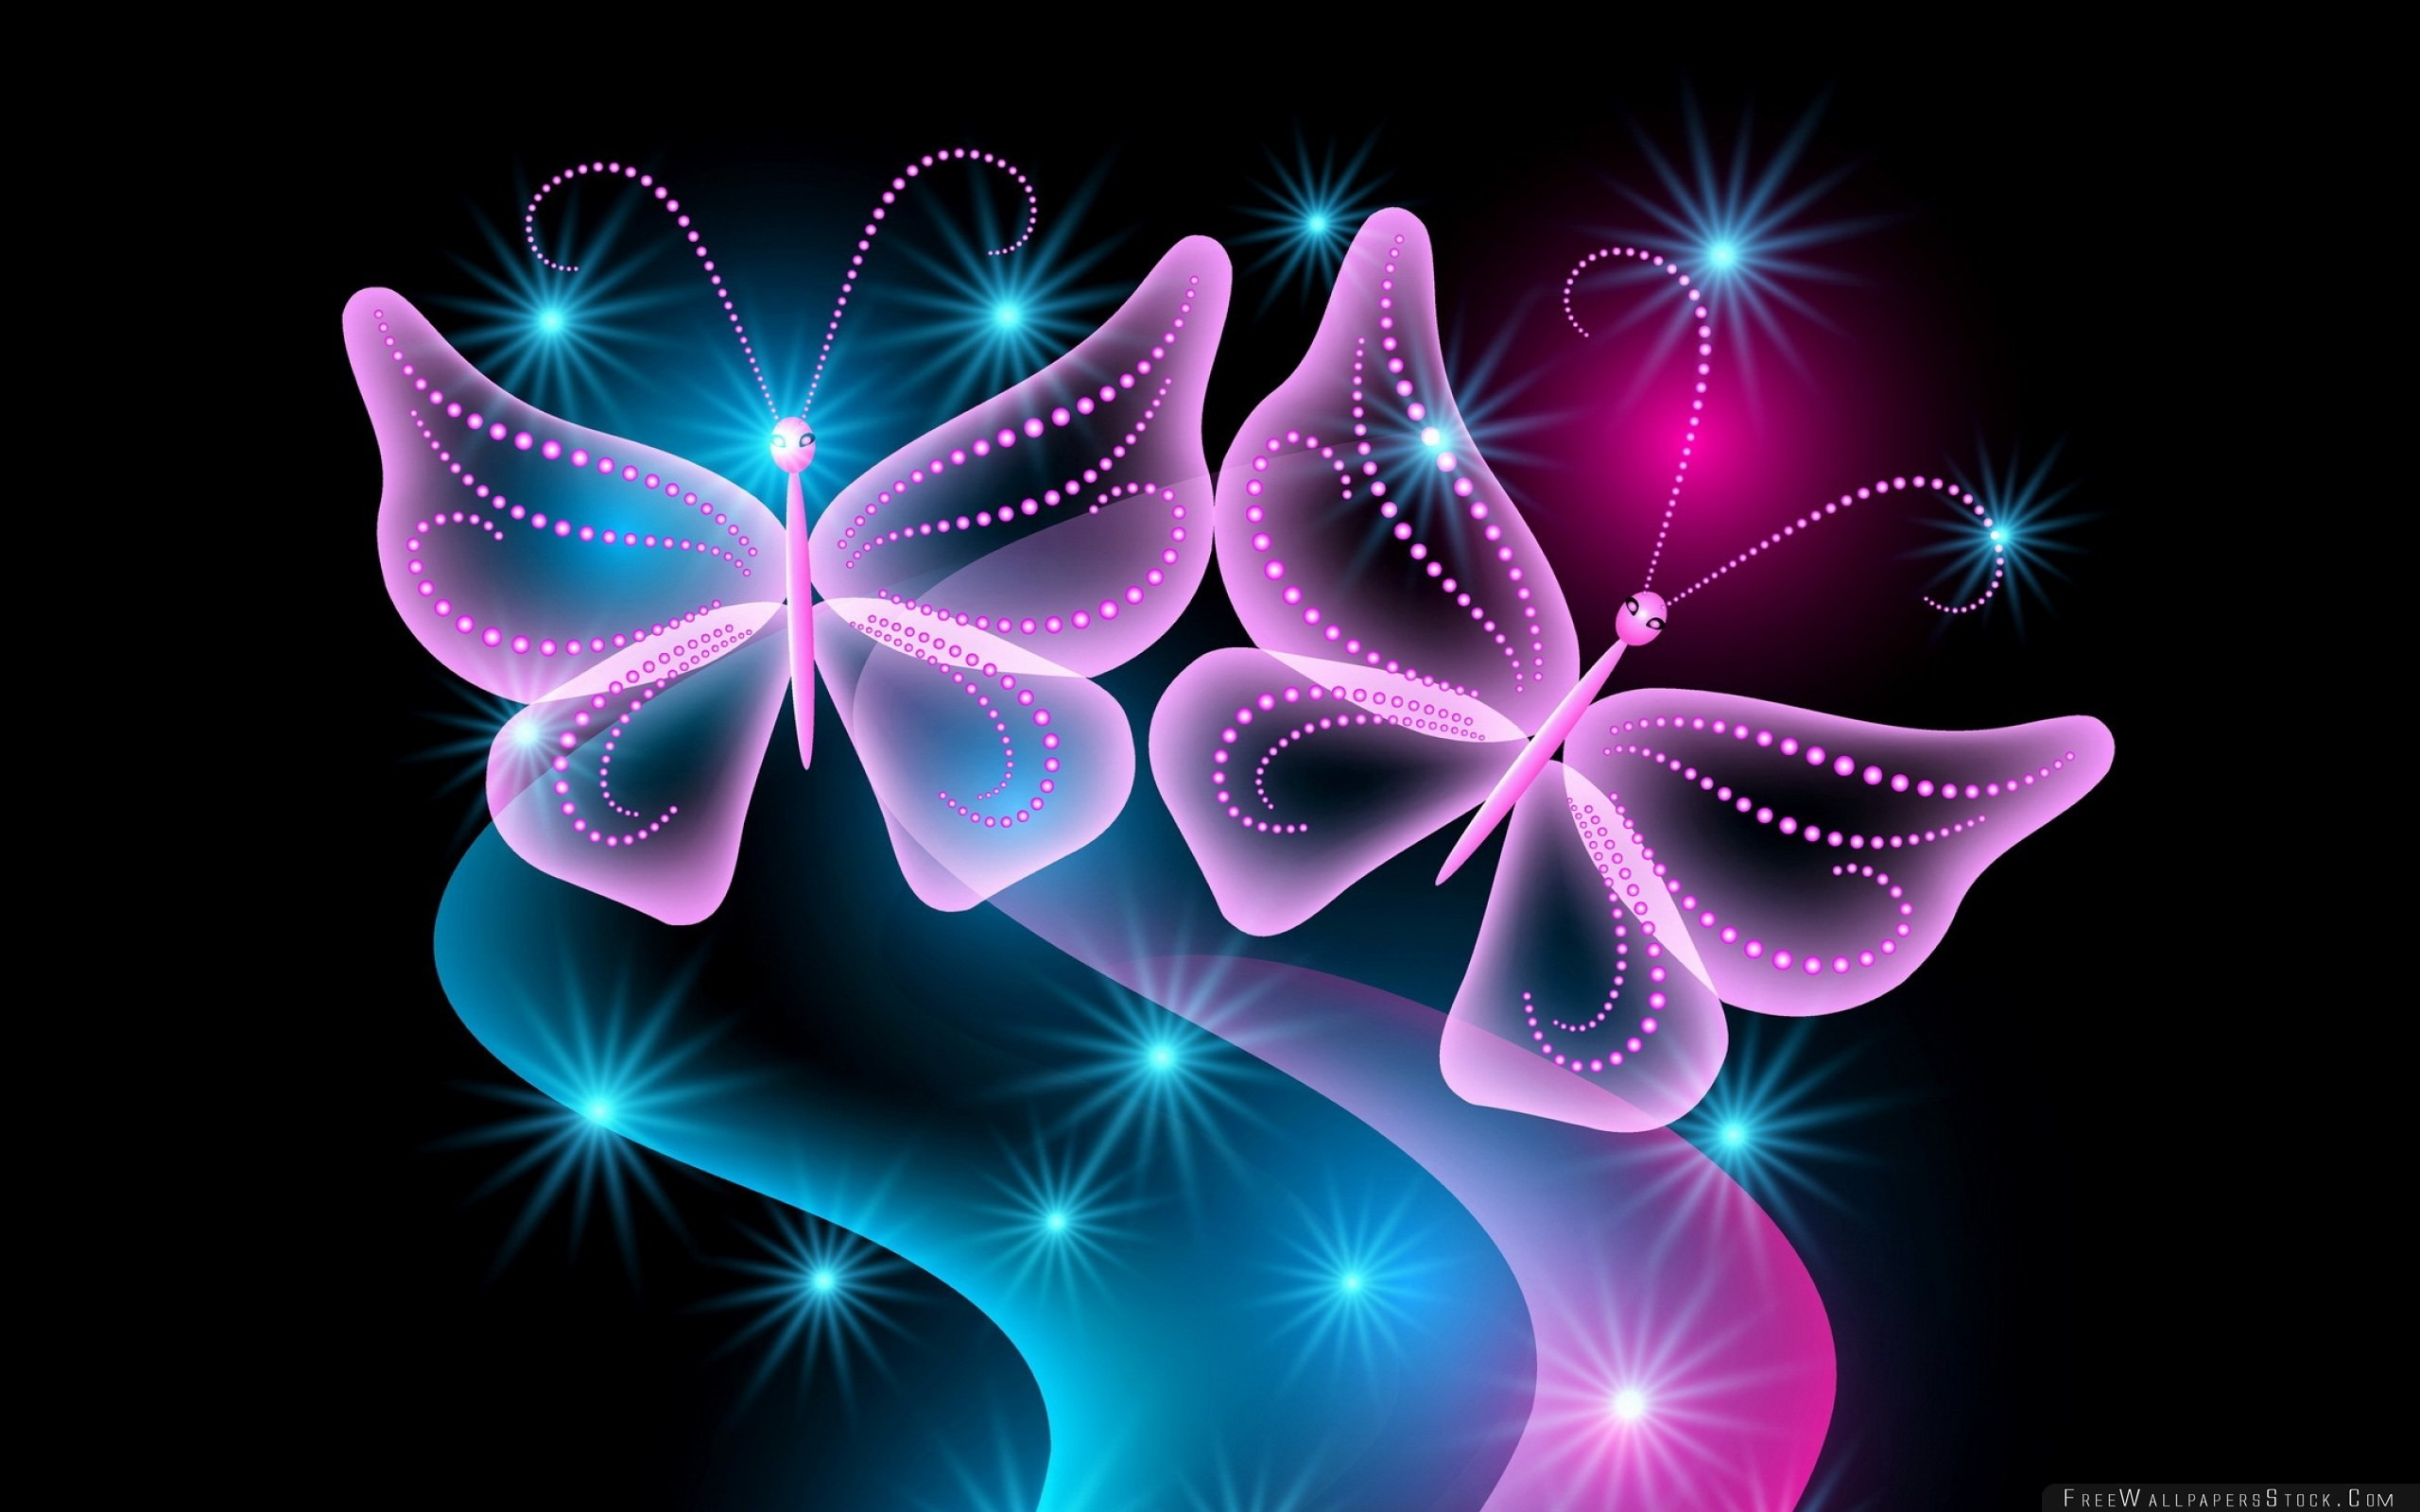 2560x1600 Download Free Wallpaper Butterflies Neon Light Abstract Black Background